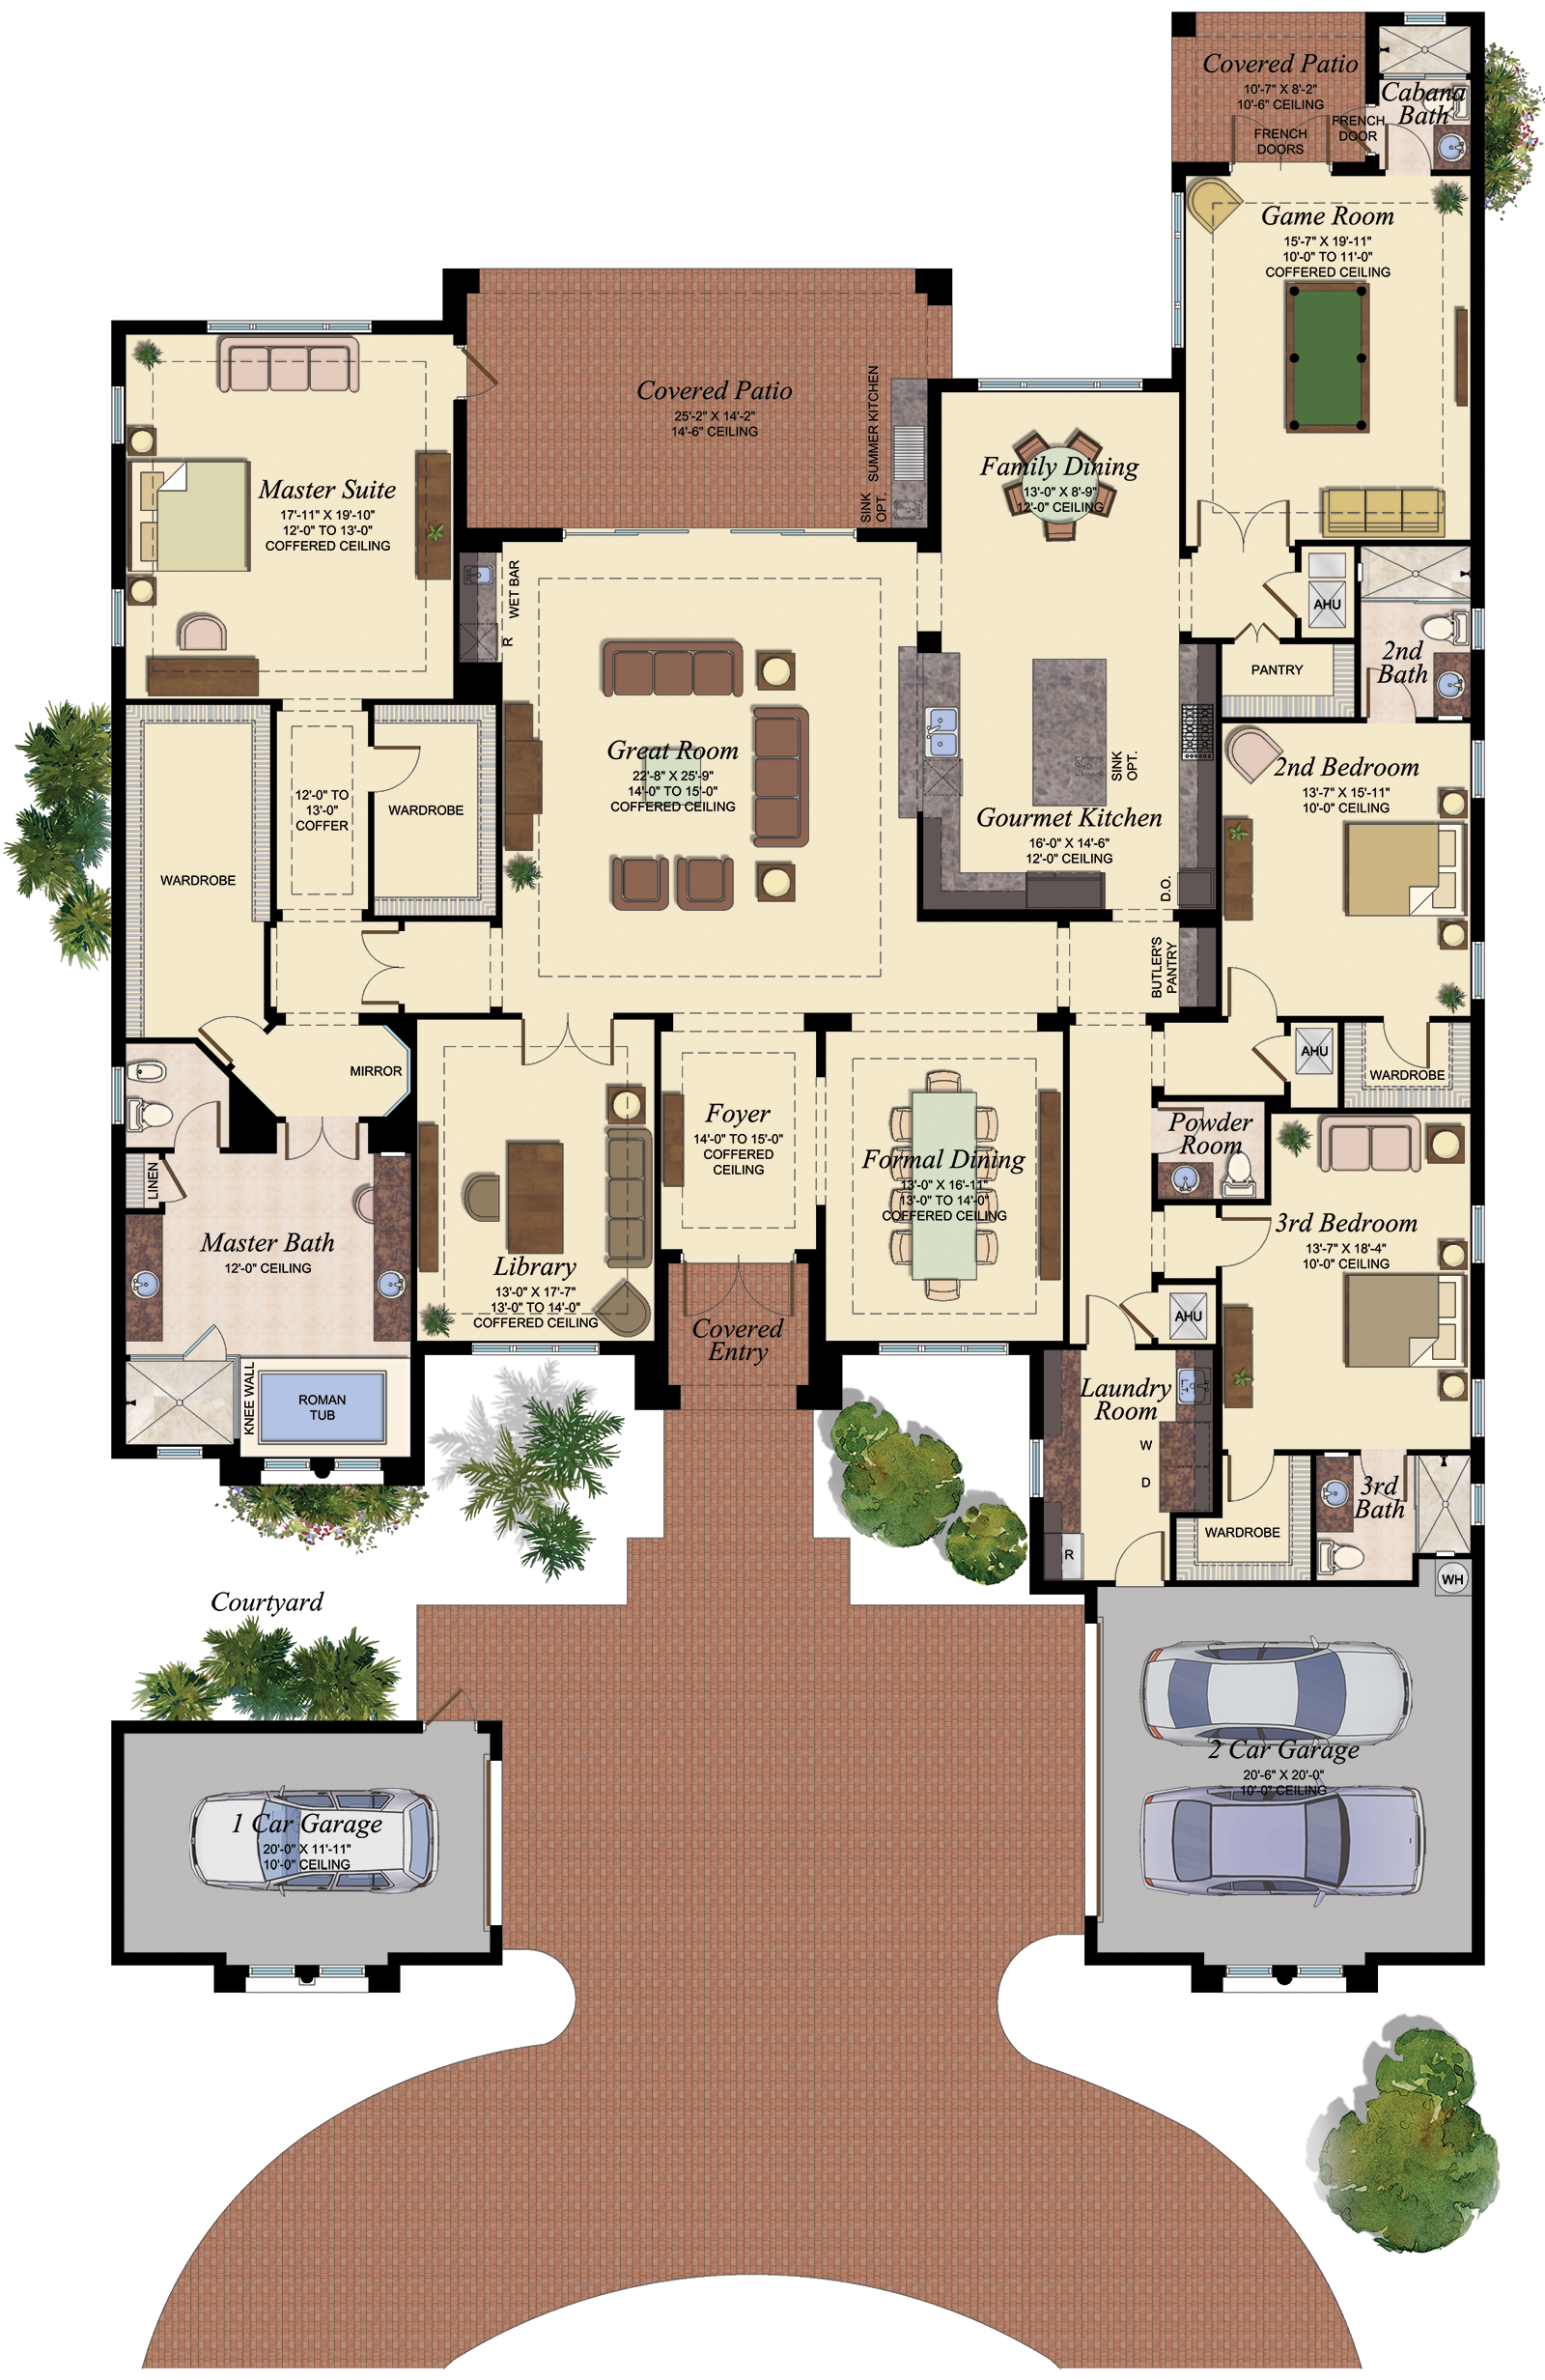 GL Homes | New house plans, House blueprints, Architectural ... on old brick homes, az homes, london bay homes,